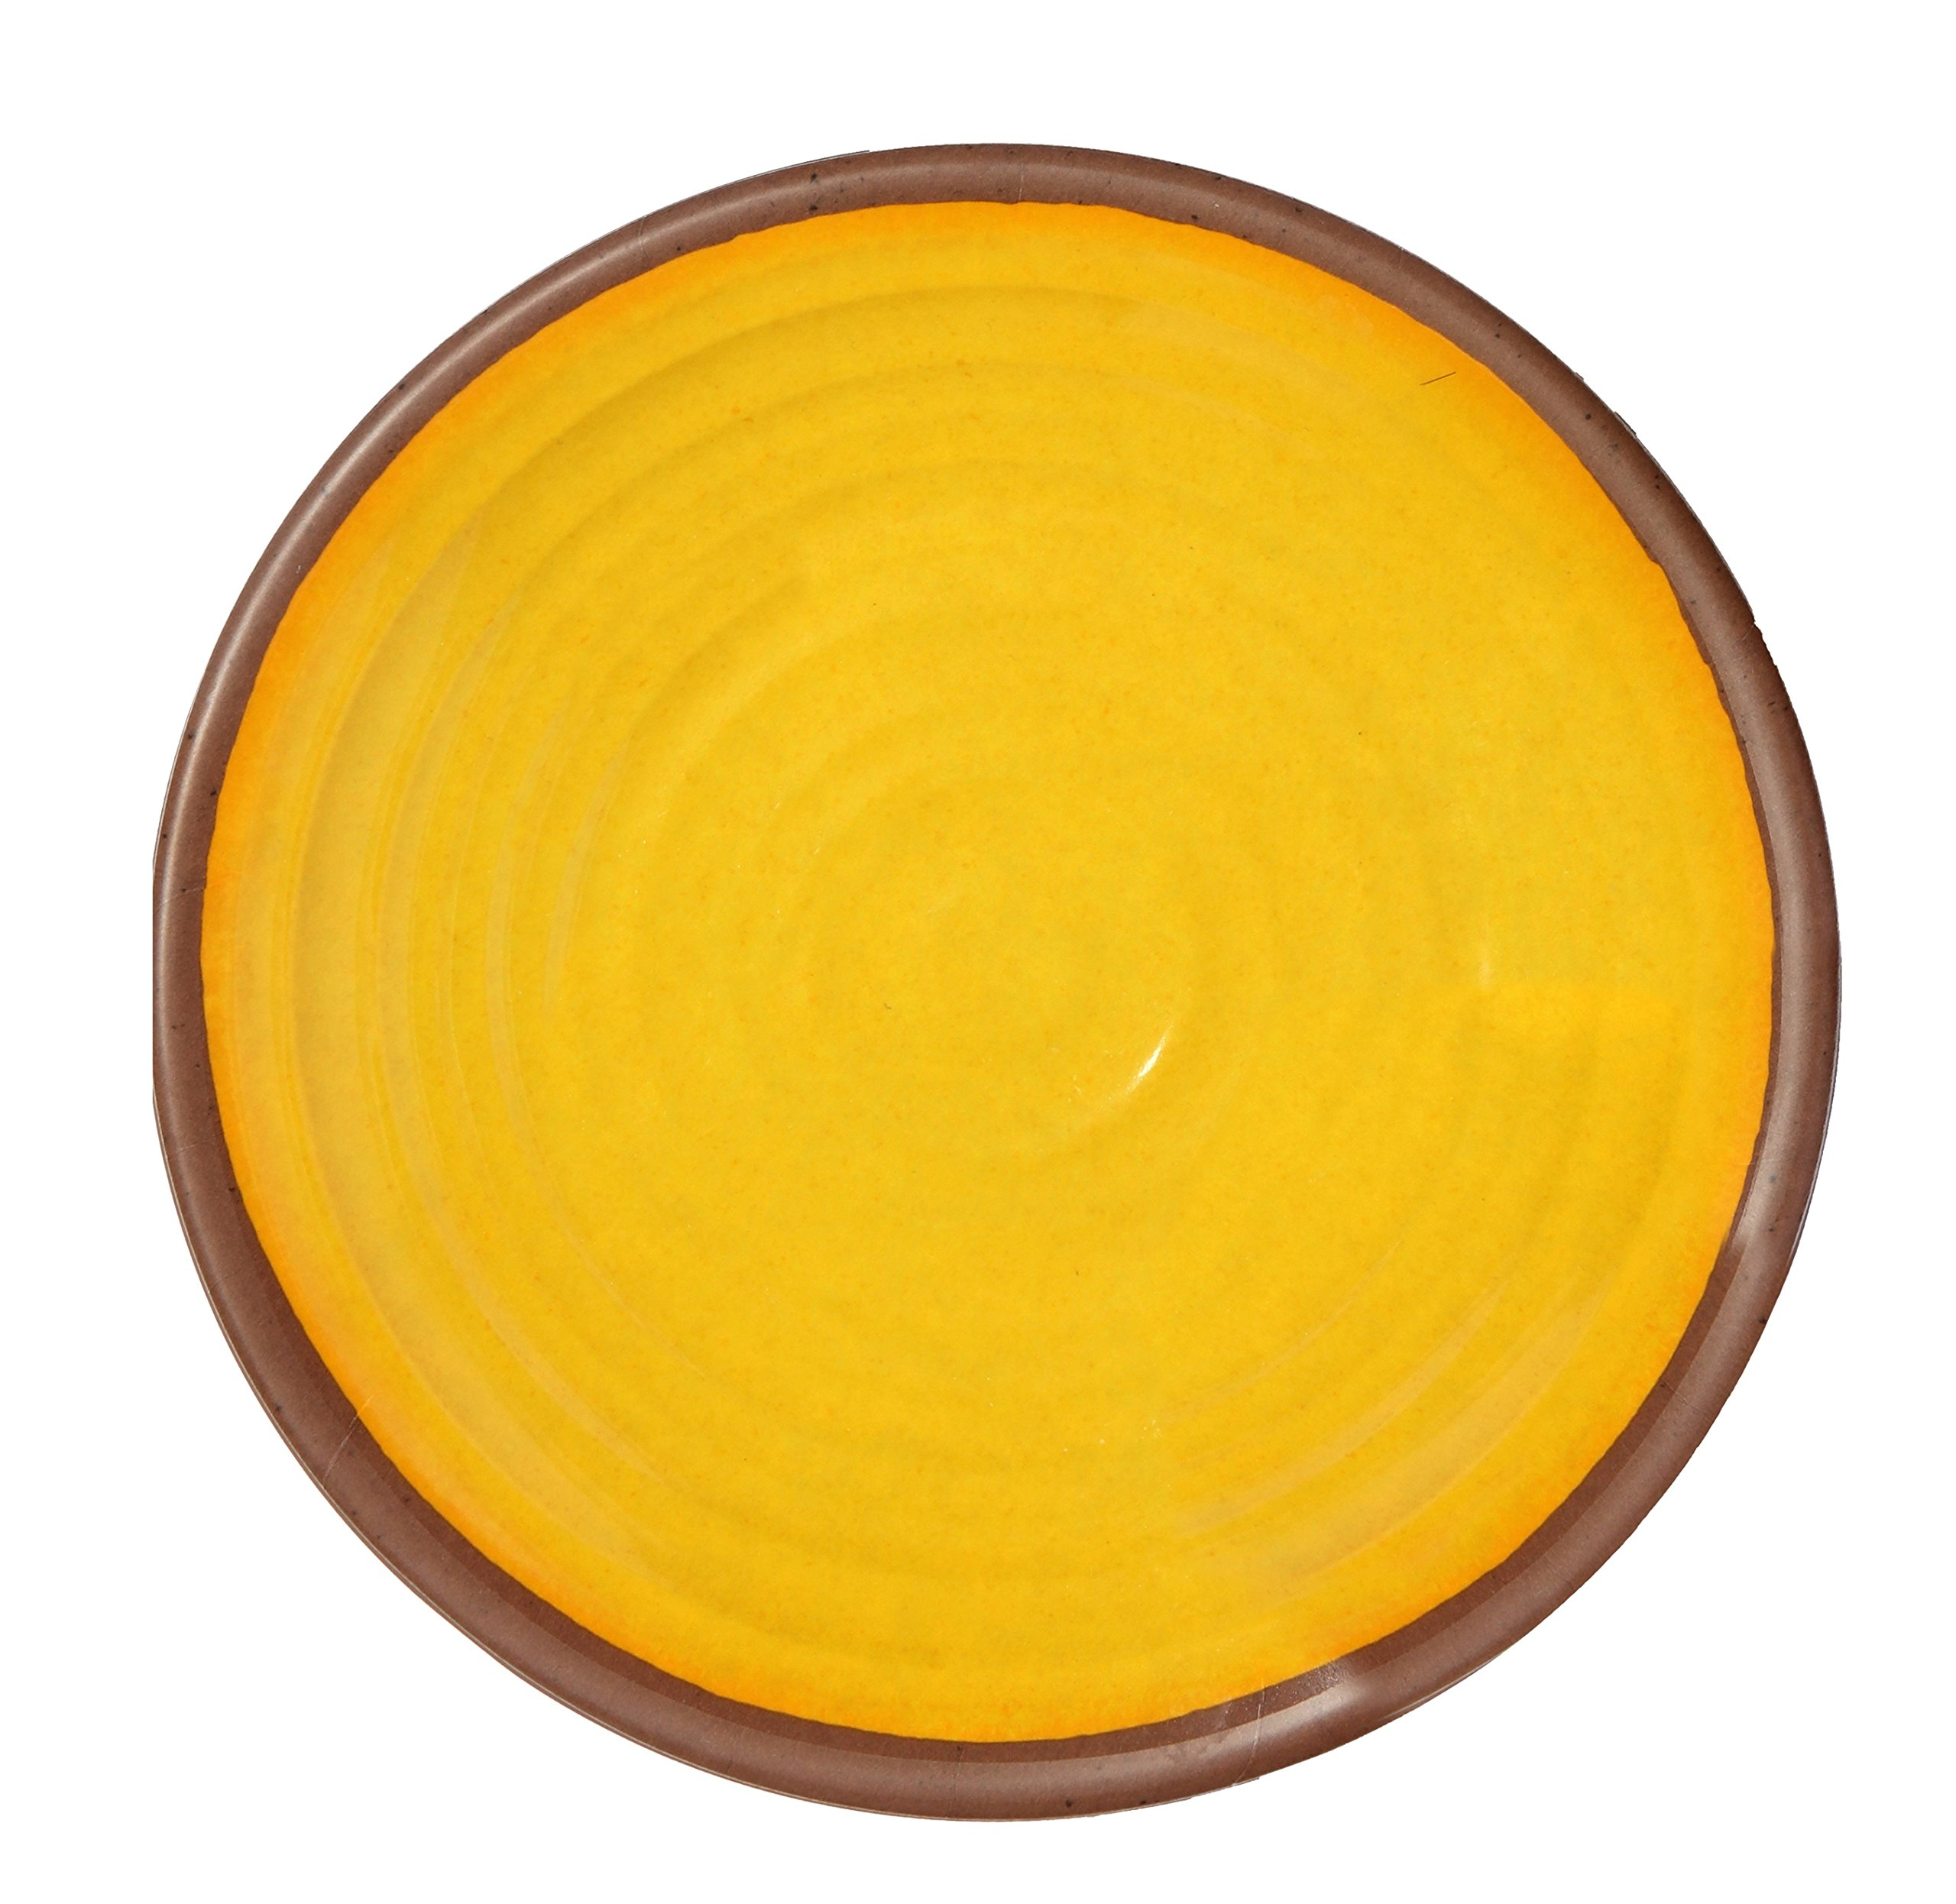 Melange 36-Piece 100% Melamine Dinner Plate Set (Clay Collection)   Shatter-Proof and Chip-Resistant Melamine Dinner Plates   Color Yellow